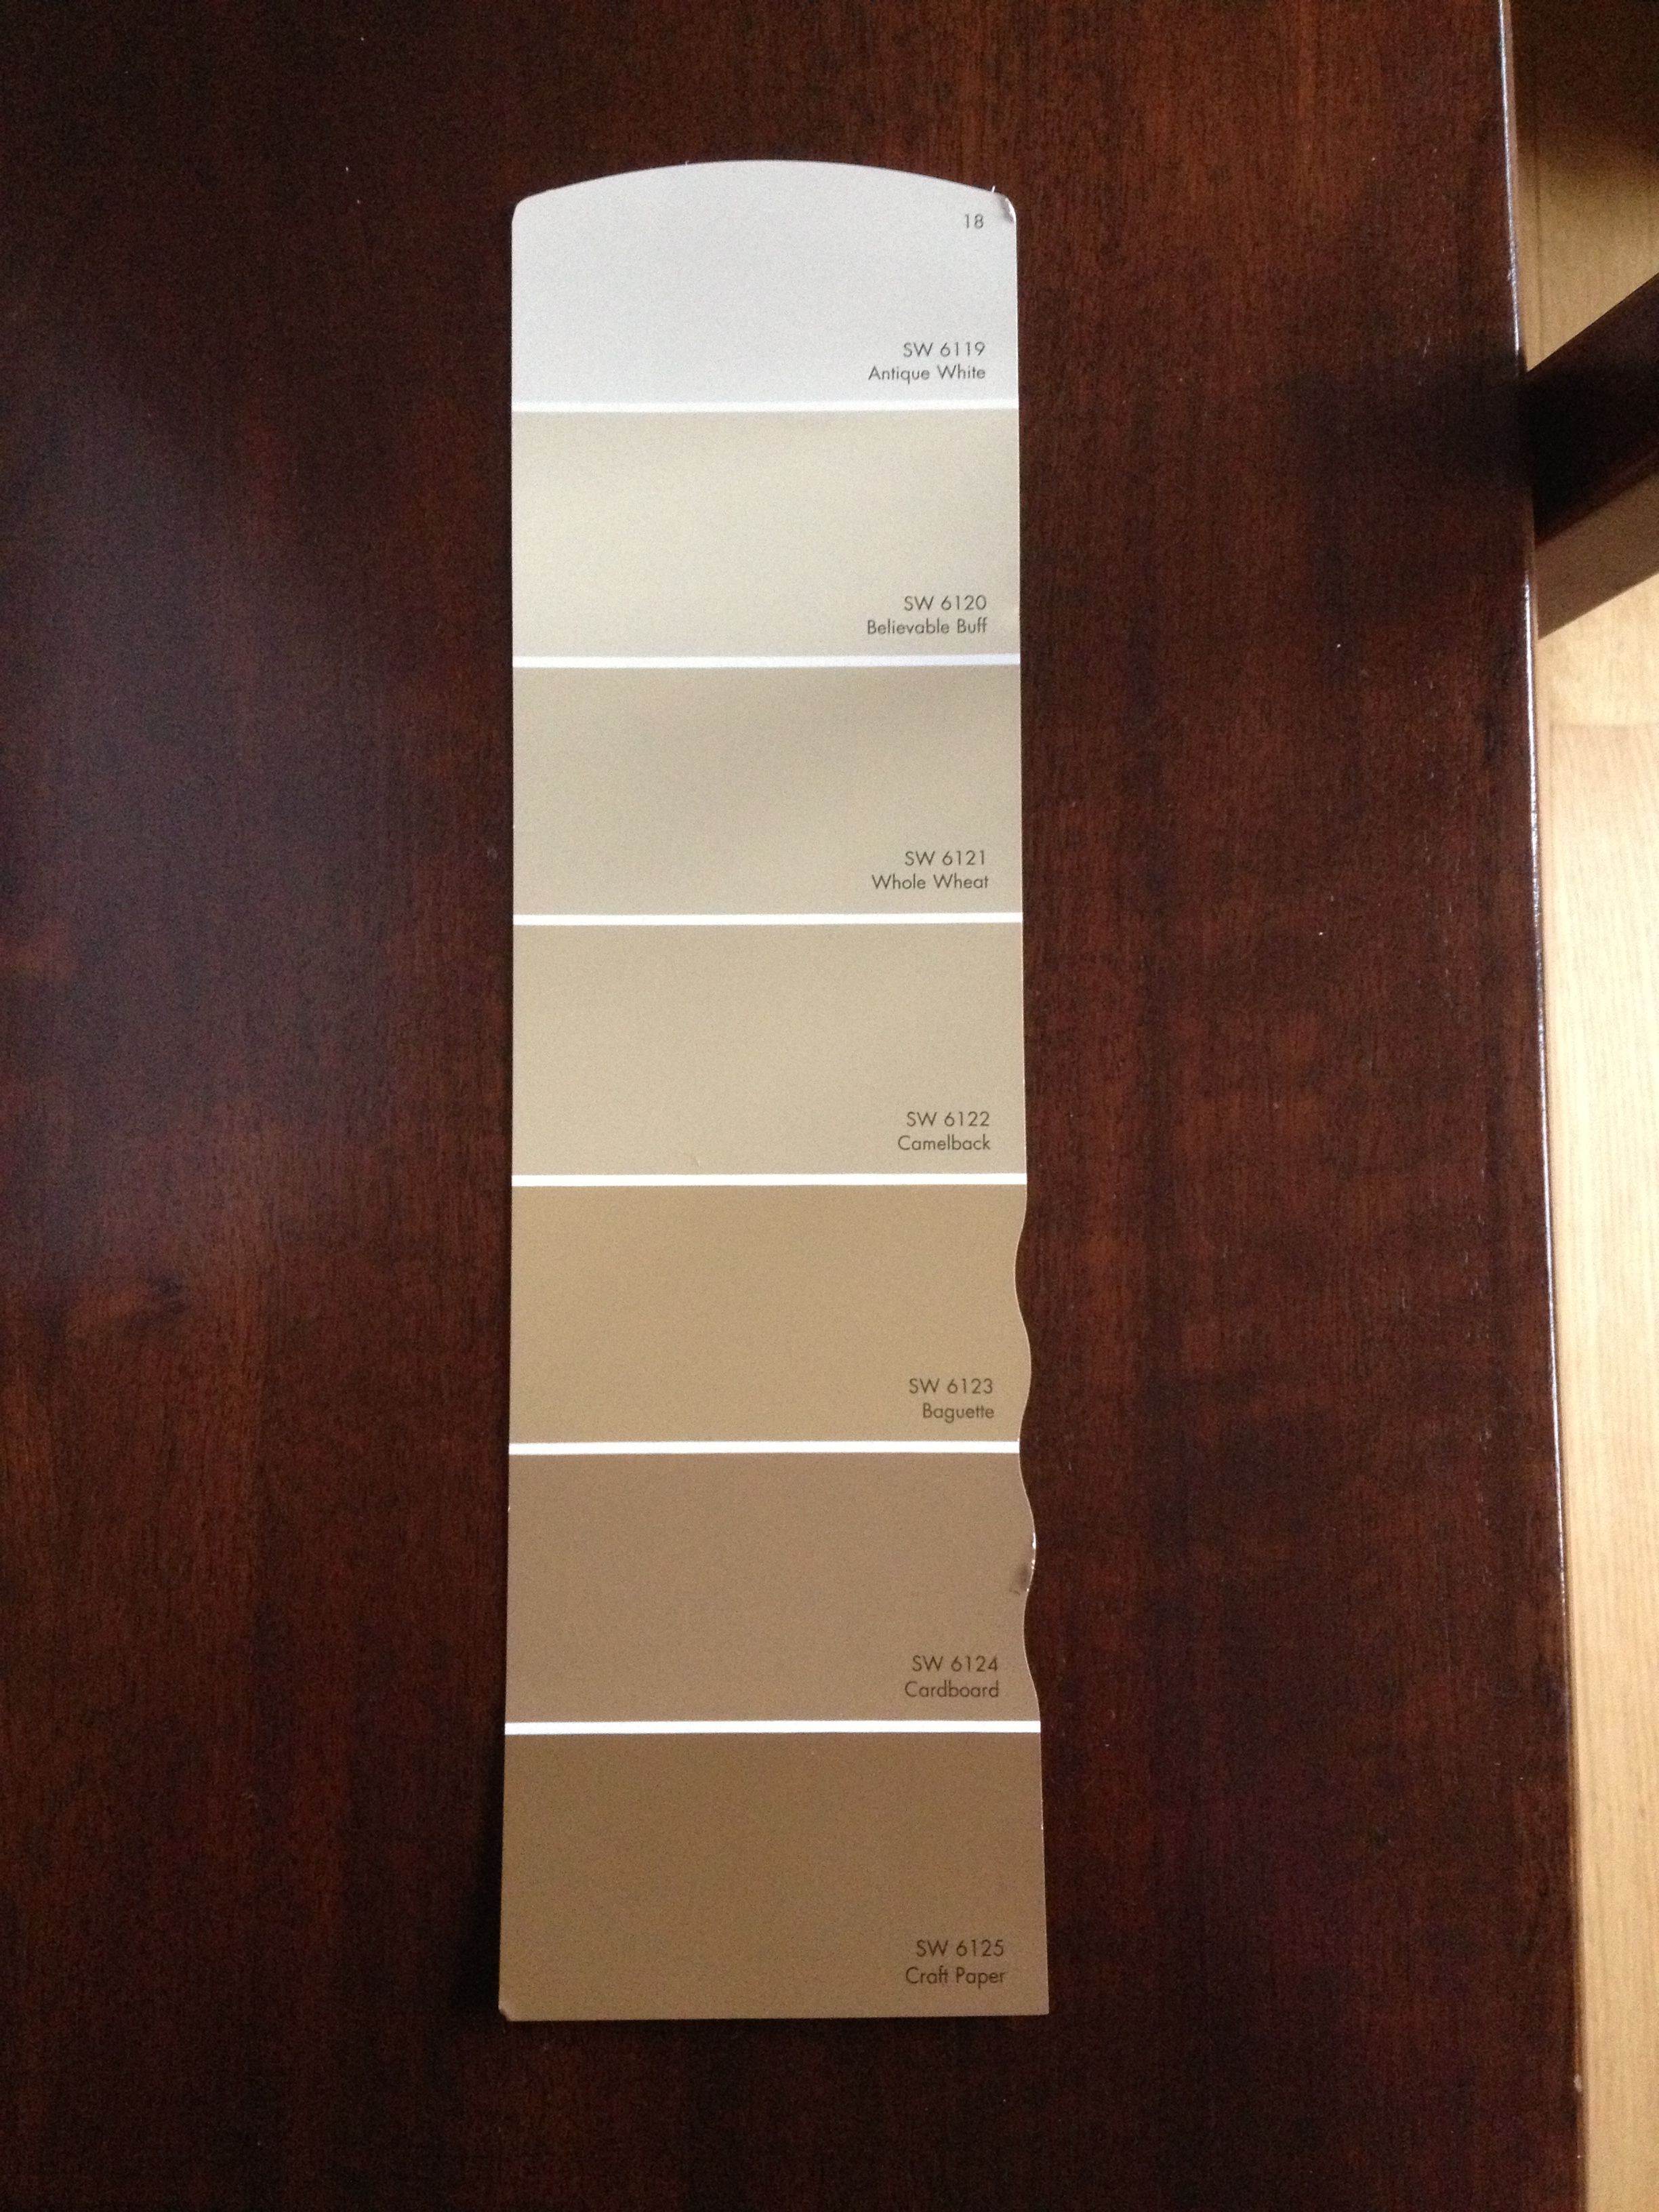 Sherwin williams believable buff - Beige Paint Sw Beige Swatch Antique White Sw 6119 Sw 6125 Craft Paper See More Believable Buff